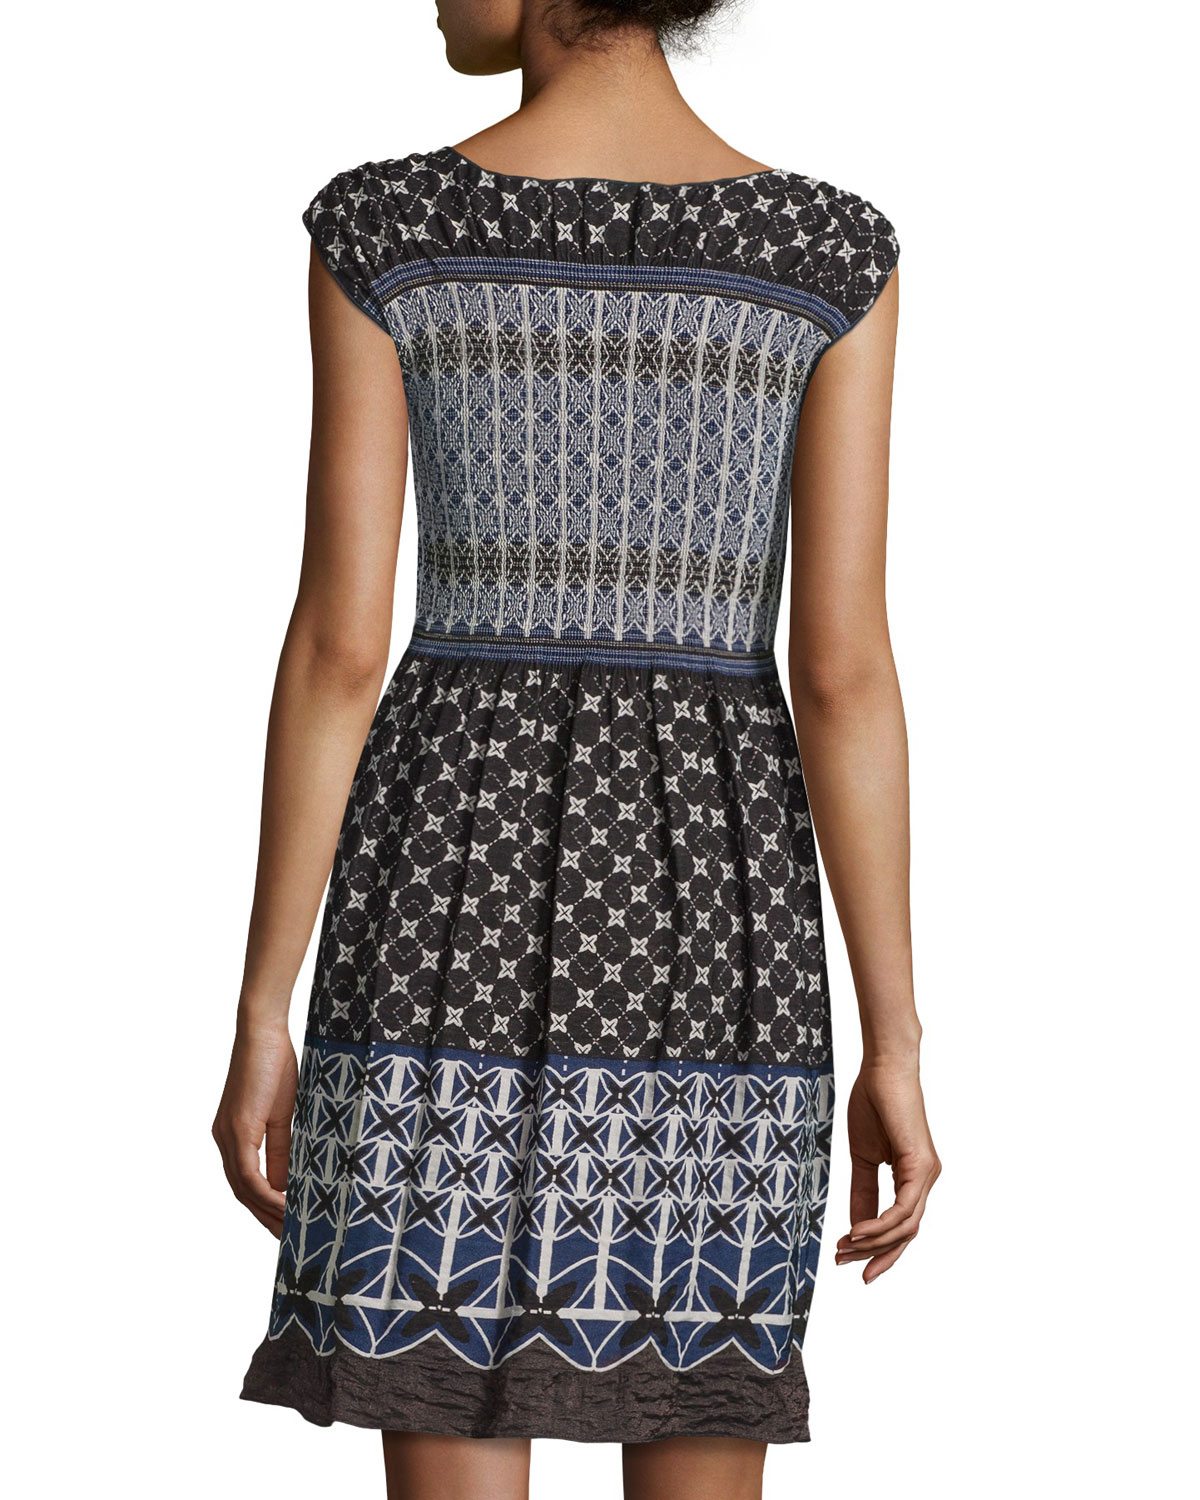 Max Studio Women's Dresses. Max Studio. Max Studio Women's Dresses. Showing 40 of 60 results that match your query. Max Studio NEW Black Illusion Lace Women's Size Small S V-Neck Dress $ Product - Max Studio NEW Black Beige Women's Size Medium M Shift Textured Dress.